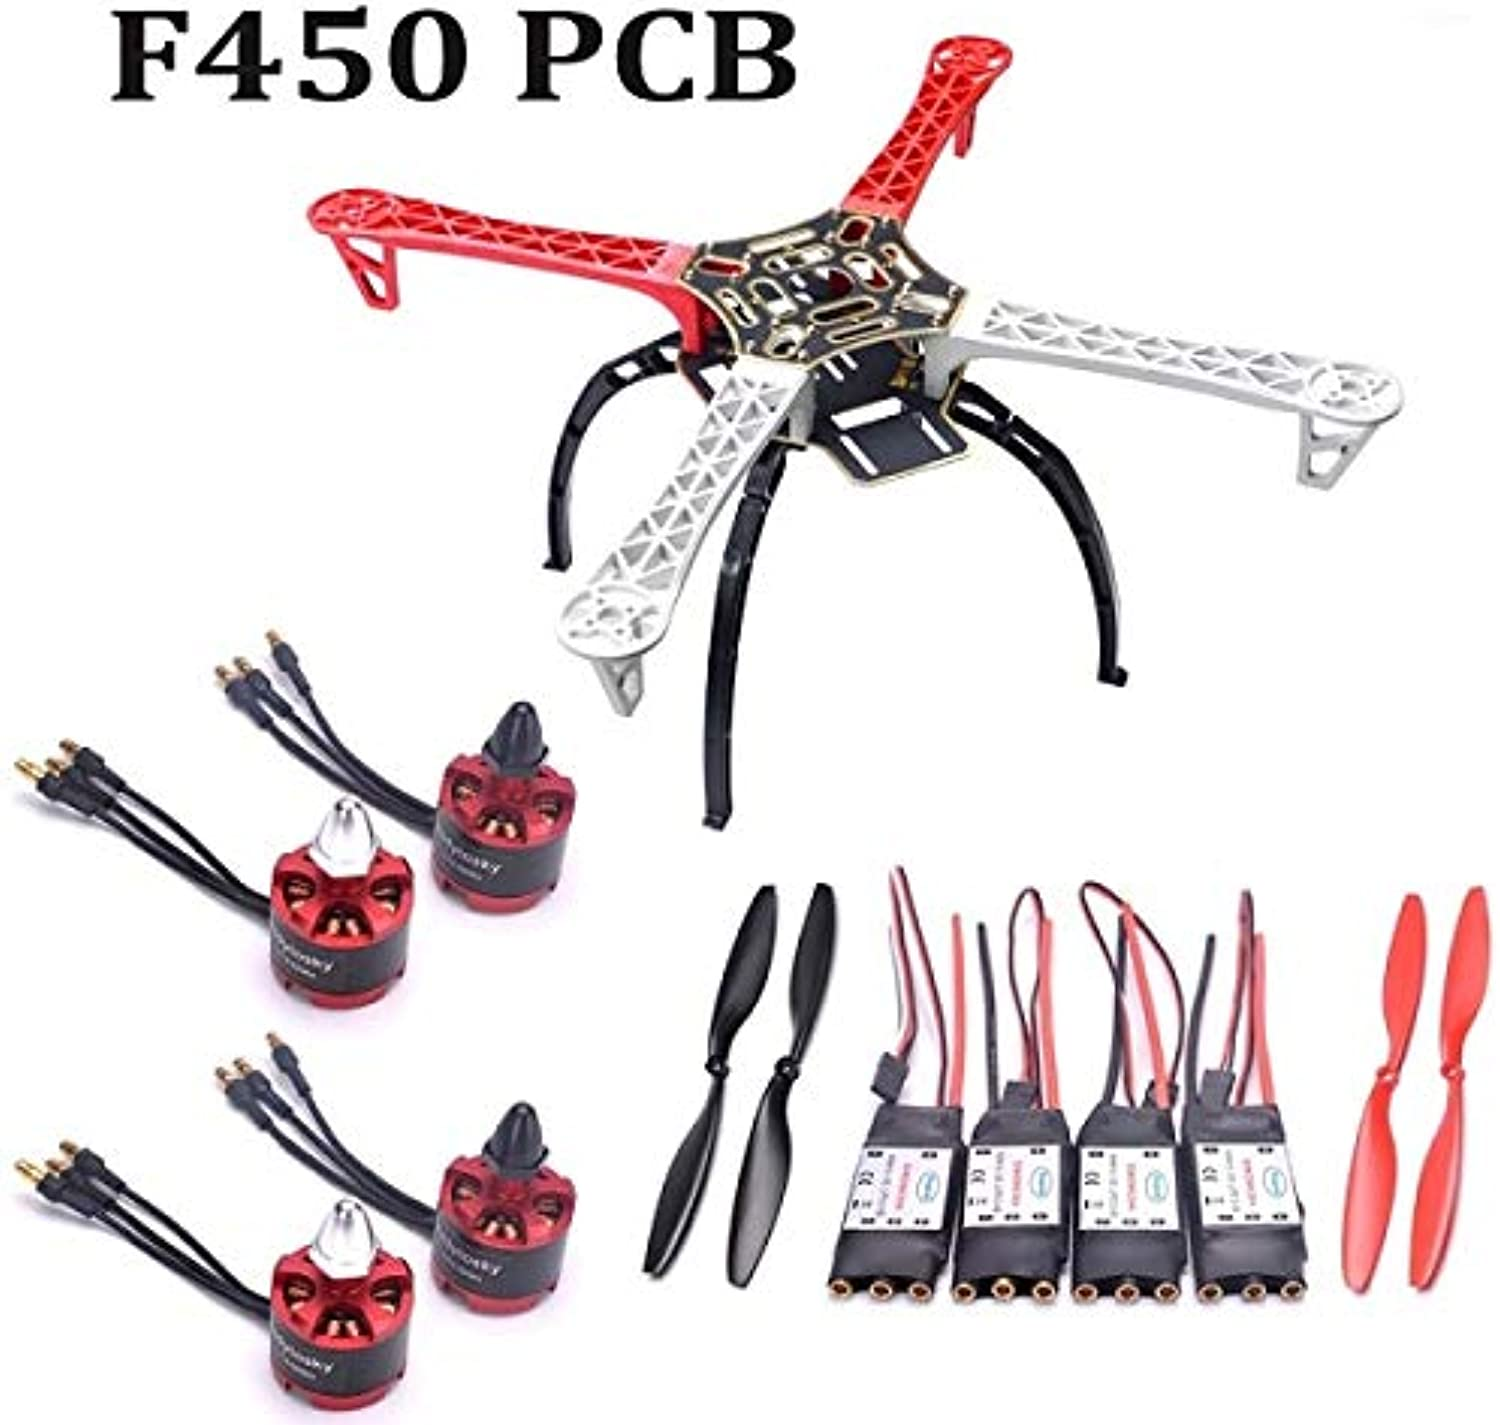 Laliva F450 450mm Quadcopter Frame kit with Landing Gear & M Lite Flight Controller Board with M8N GPS 2212 920kv 30A simonk ESC  (color  Choice 1)